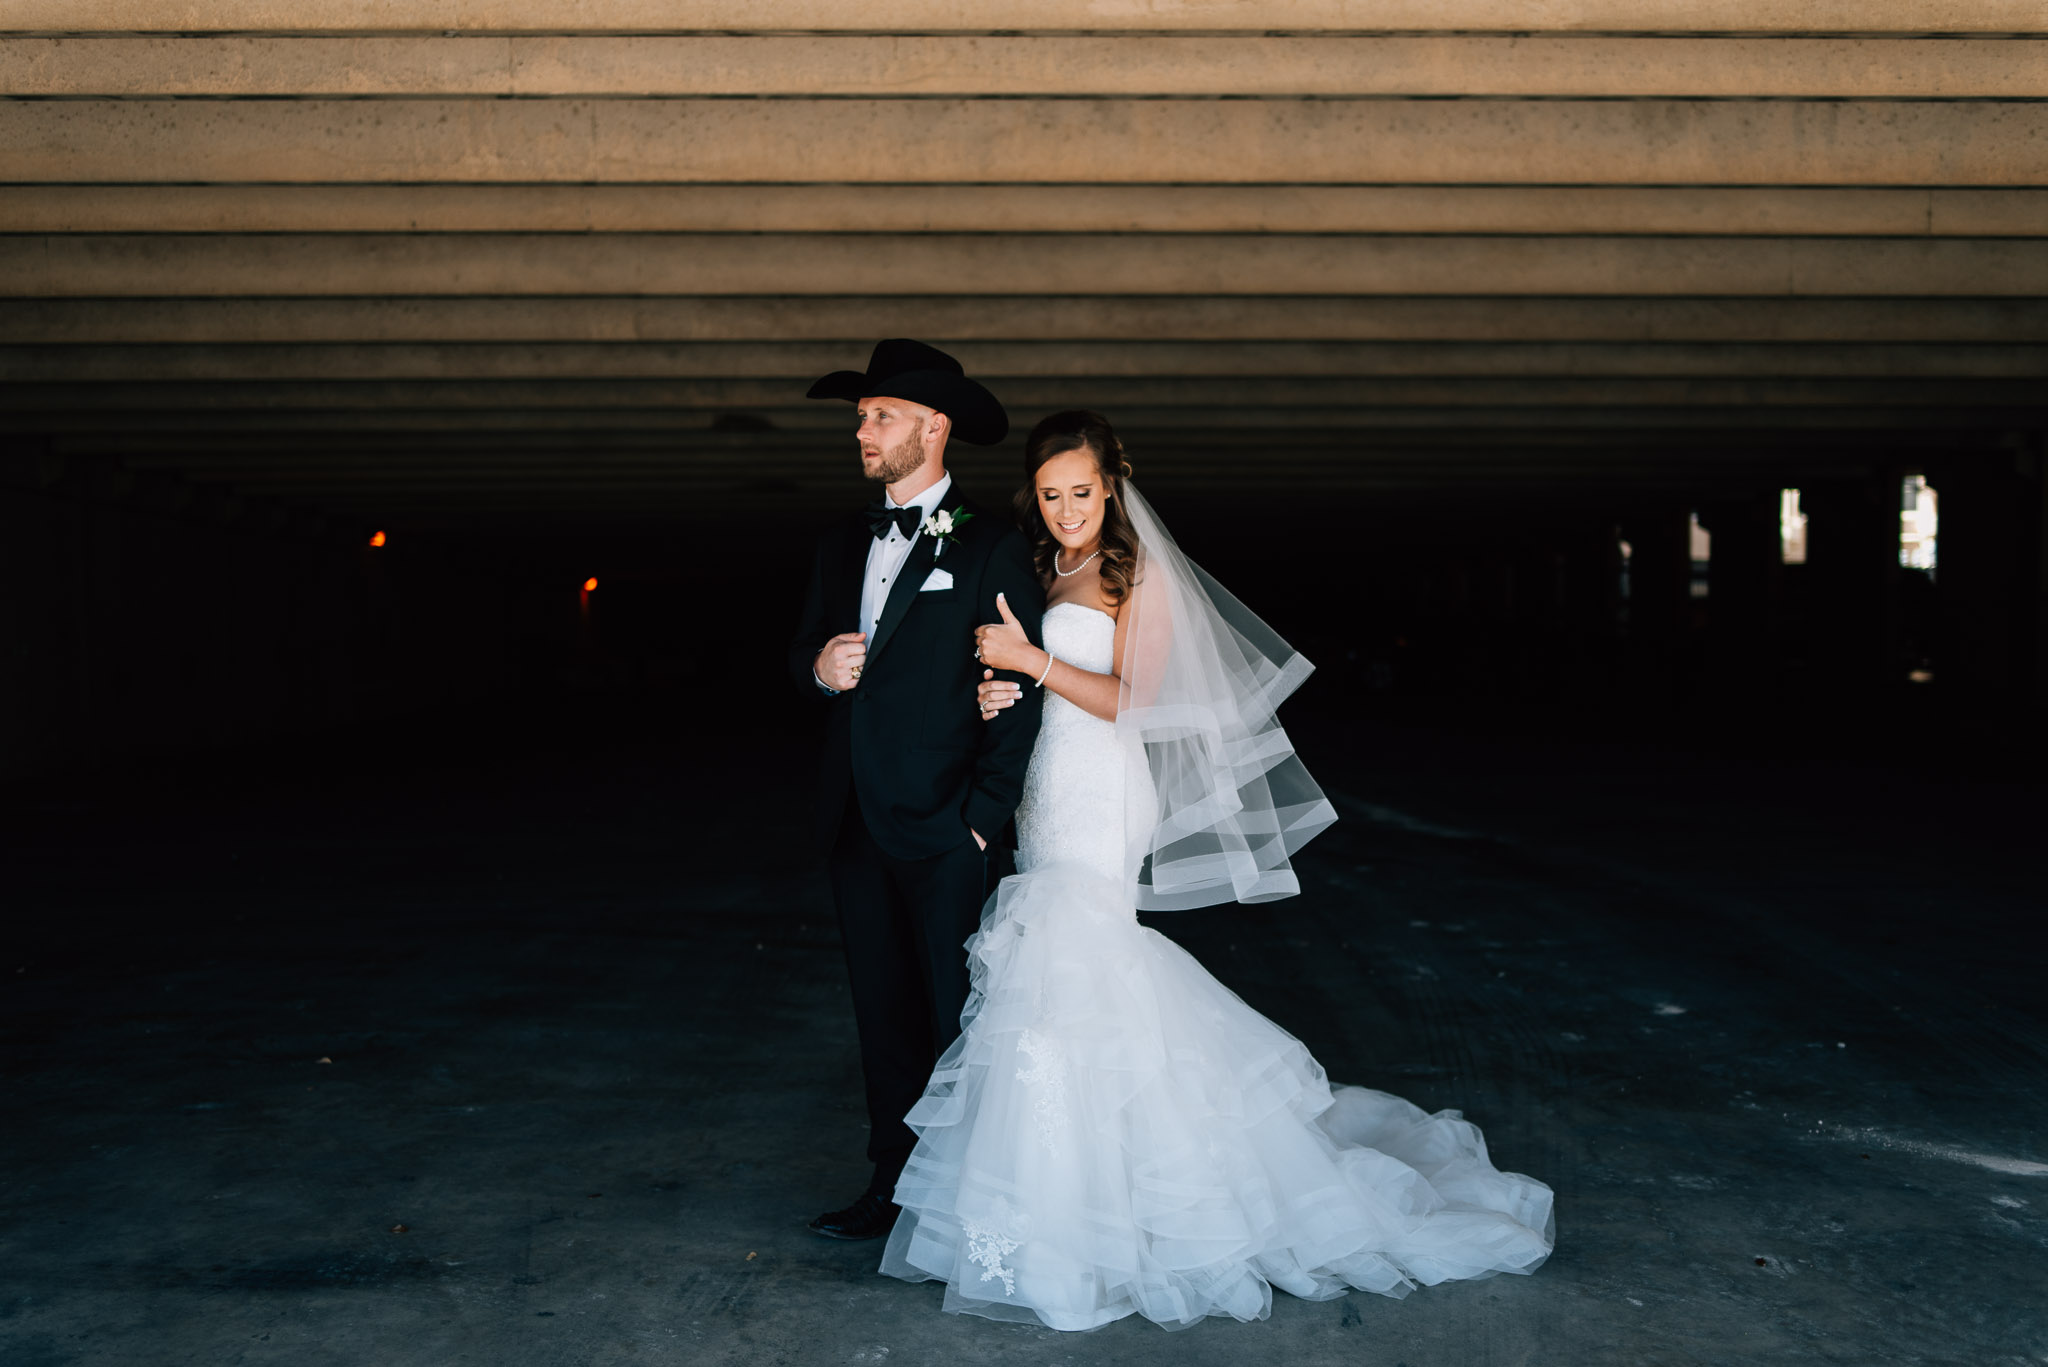 the Cactus Hotel - If you're looking for something that screams elegant for your ballroom wedding look no further. The Cactus Hotel, previously The Hilton Hotel in the 1920's is a San Angelo staple in the downtown area offering elegant accommodations for San Angelo brides and grooms.